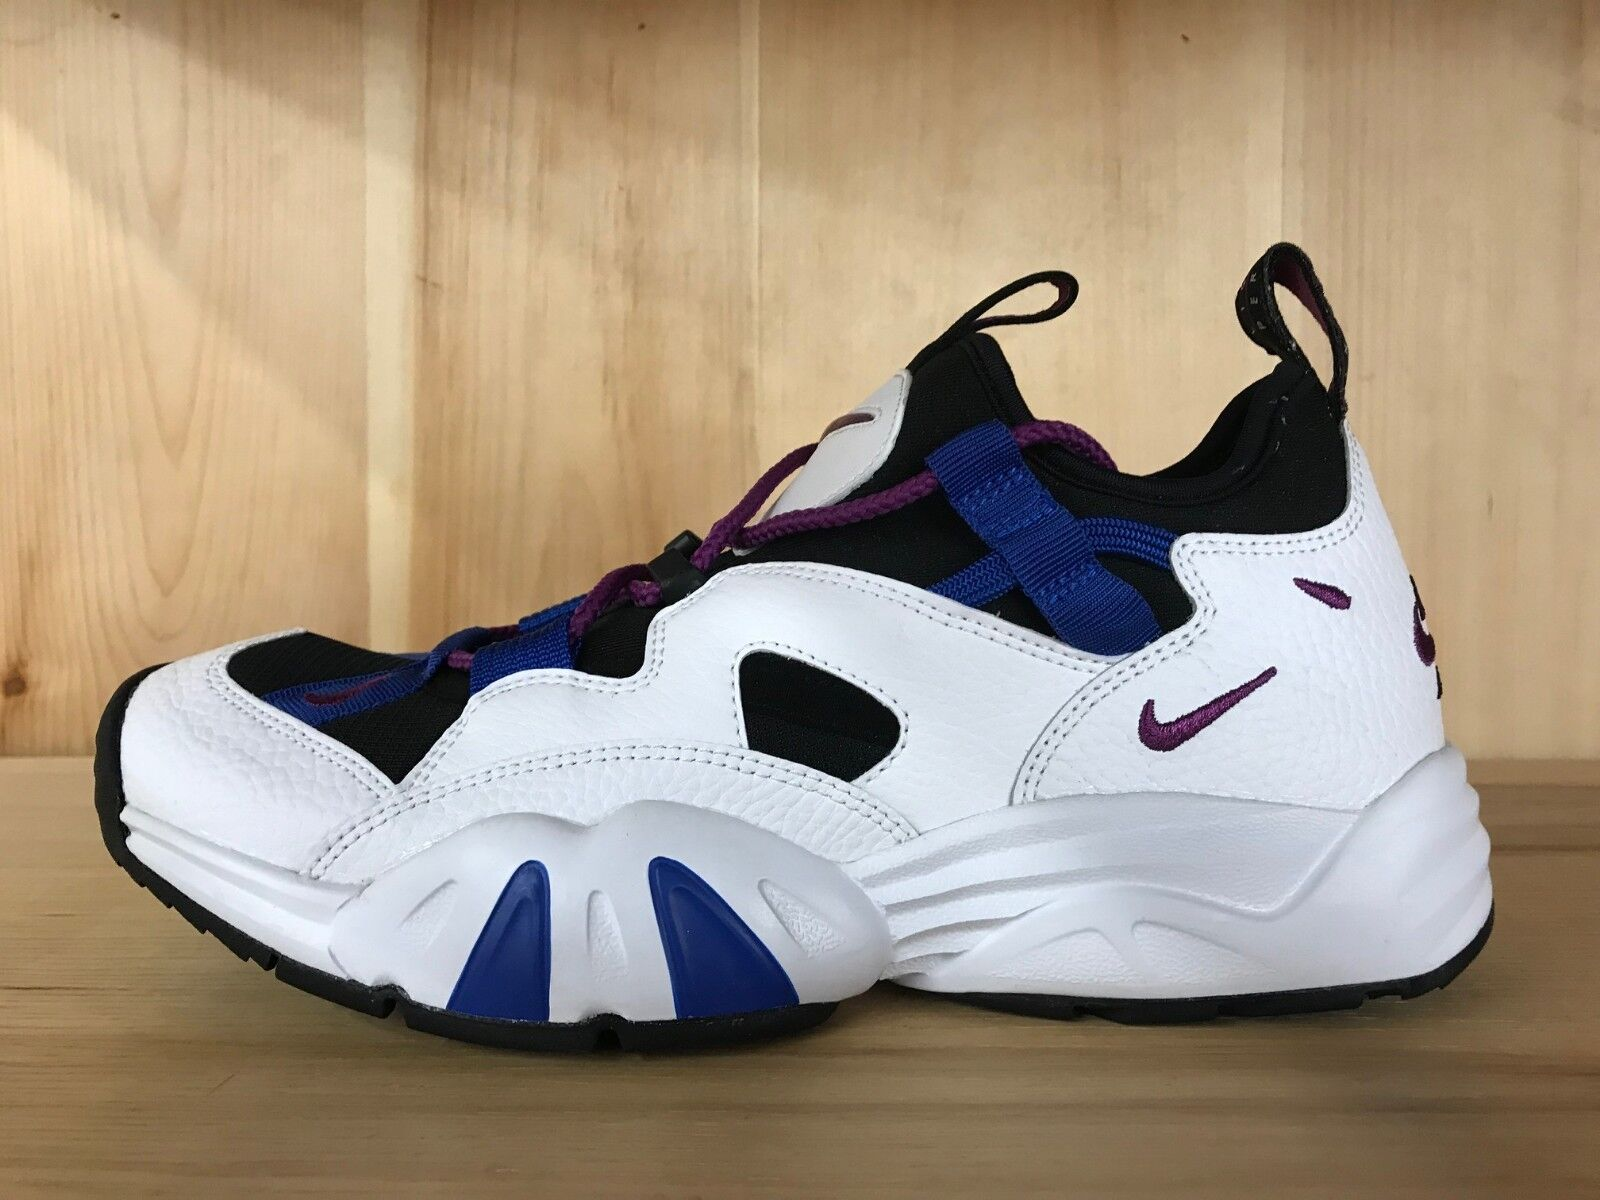 check out 3eccc c37dc good nike air crier lwp blanc bold berry berry berry lyon bleu ah8517 100  formation sz